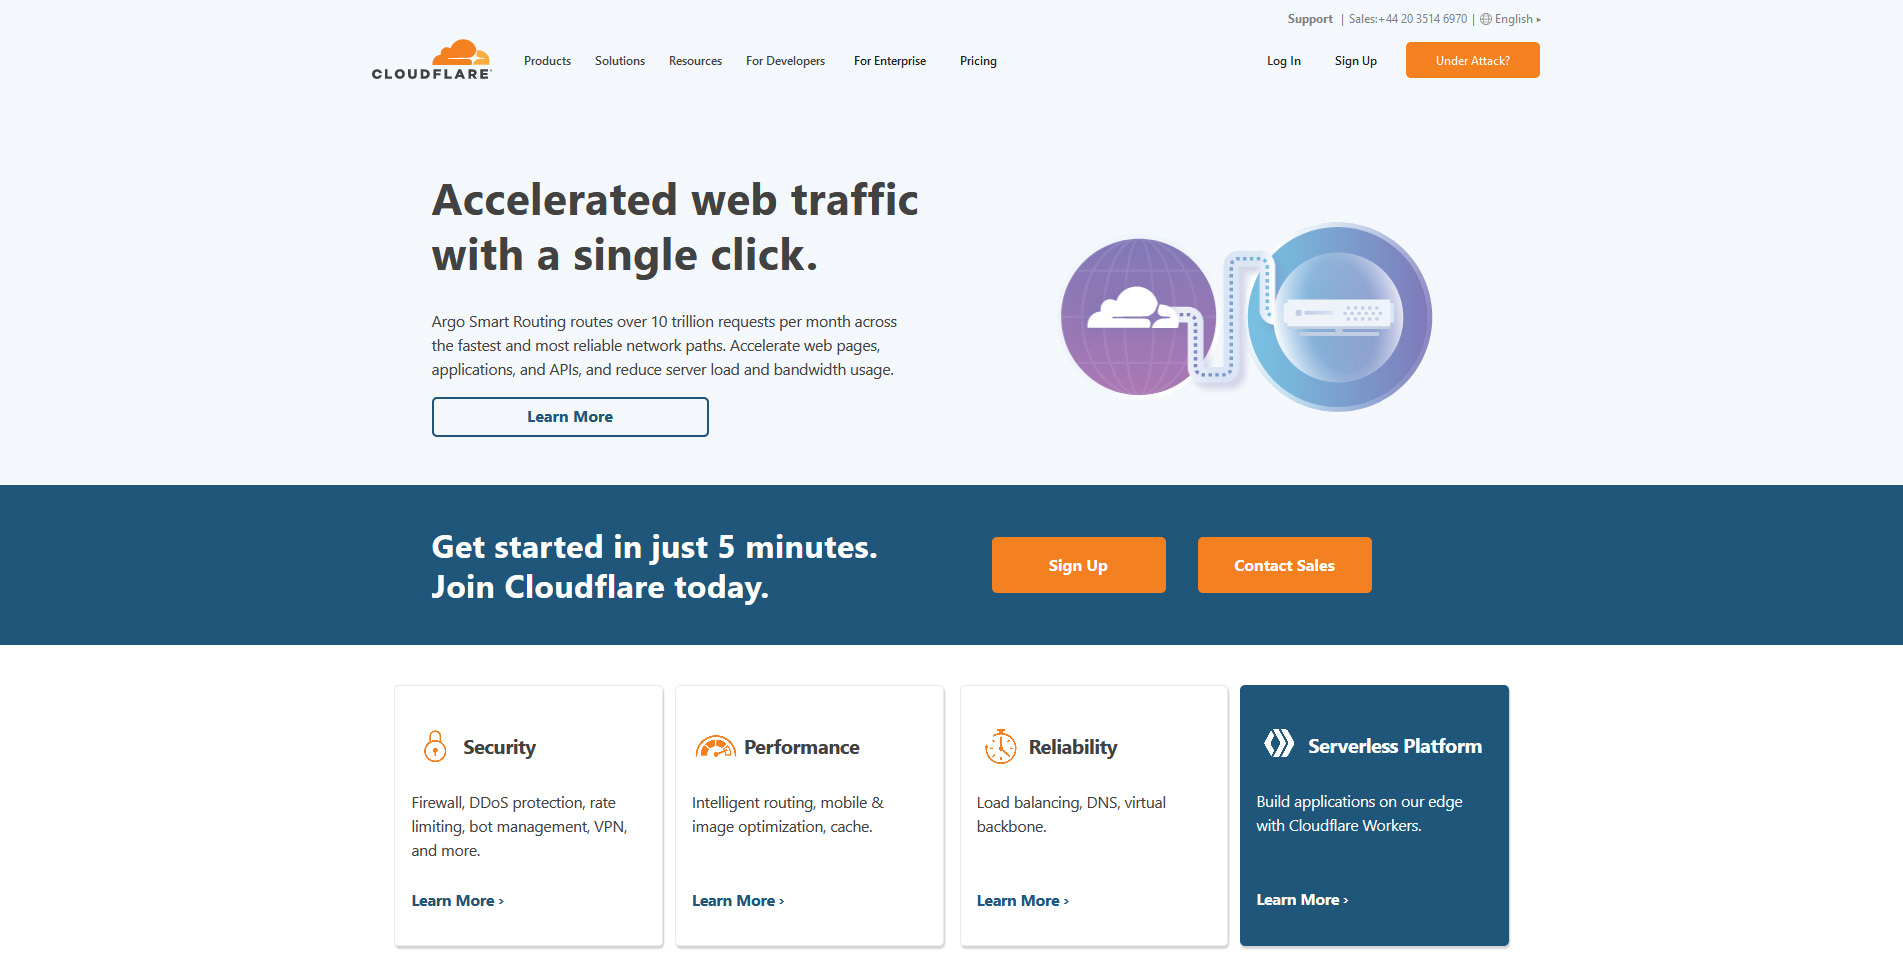 1 Cloudflare